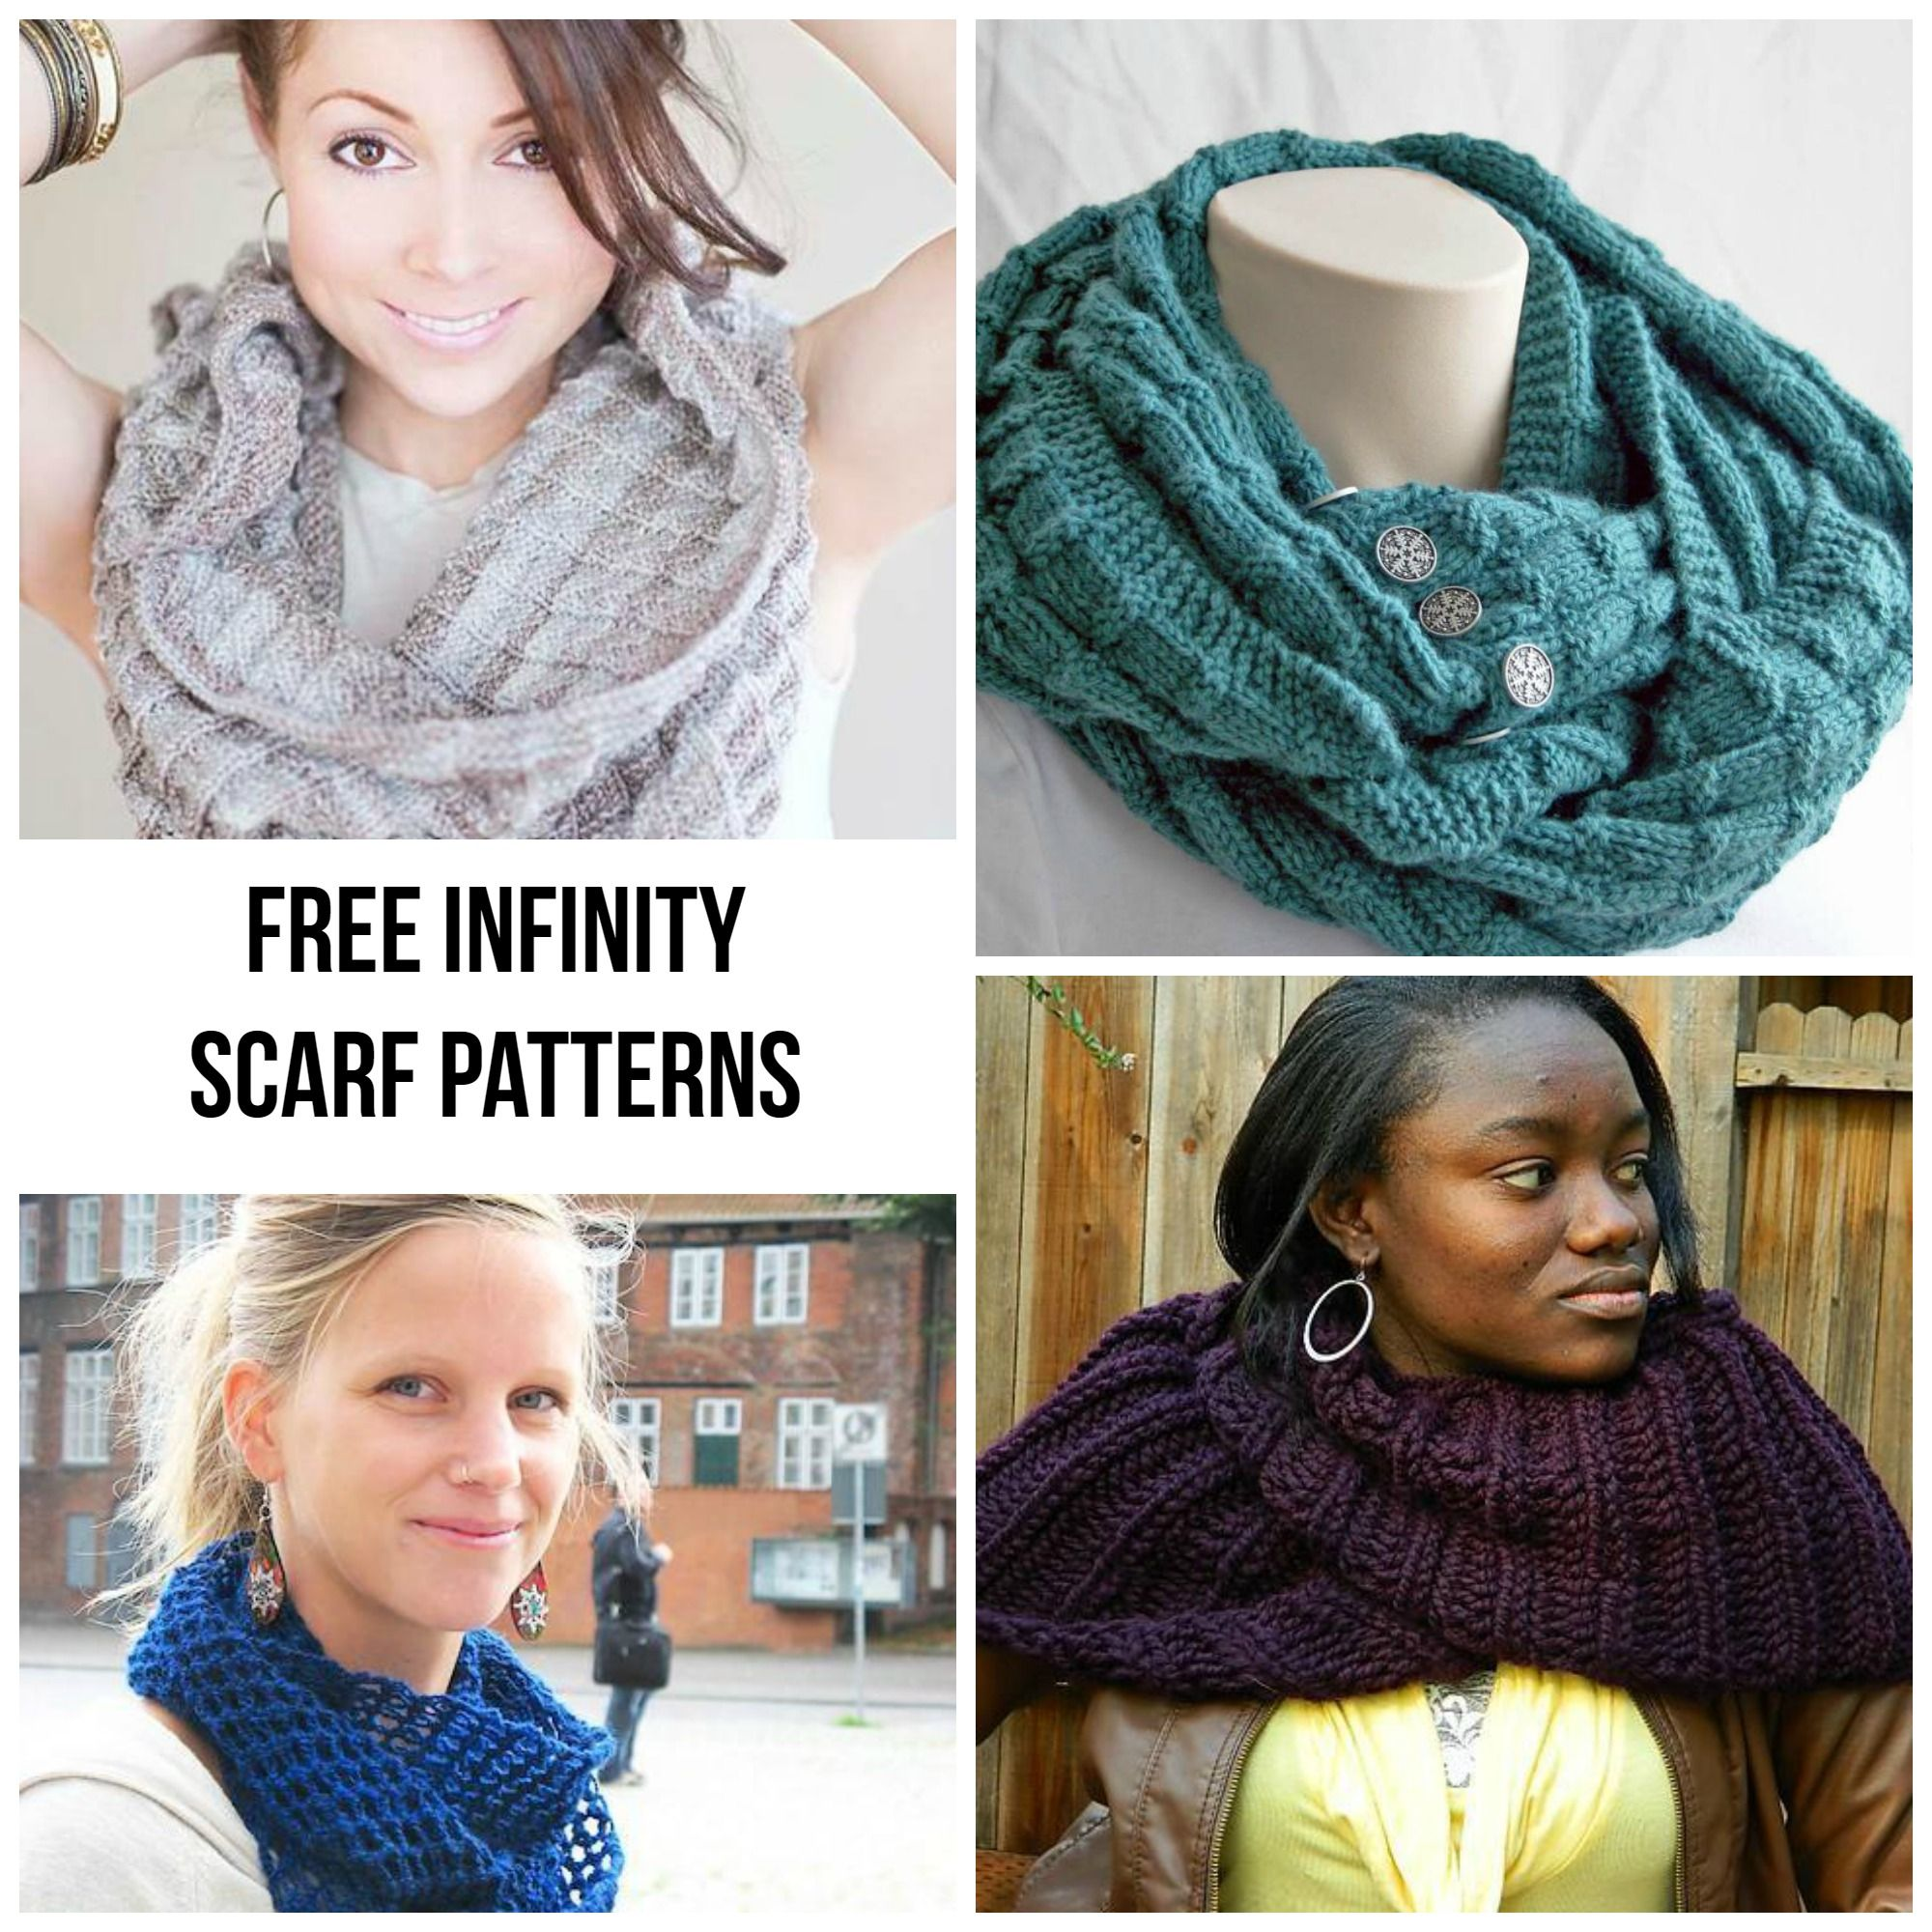 Get Wrapped Up in 7 FREE Infinity Scarf Patterns ...